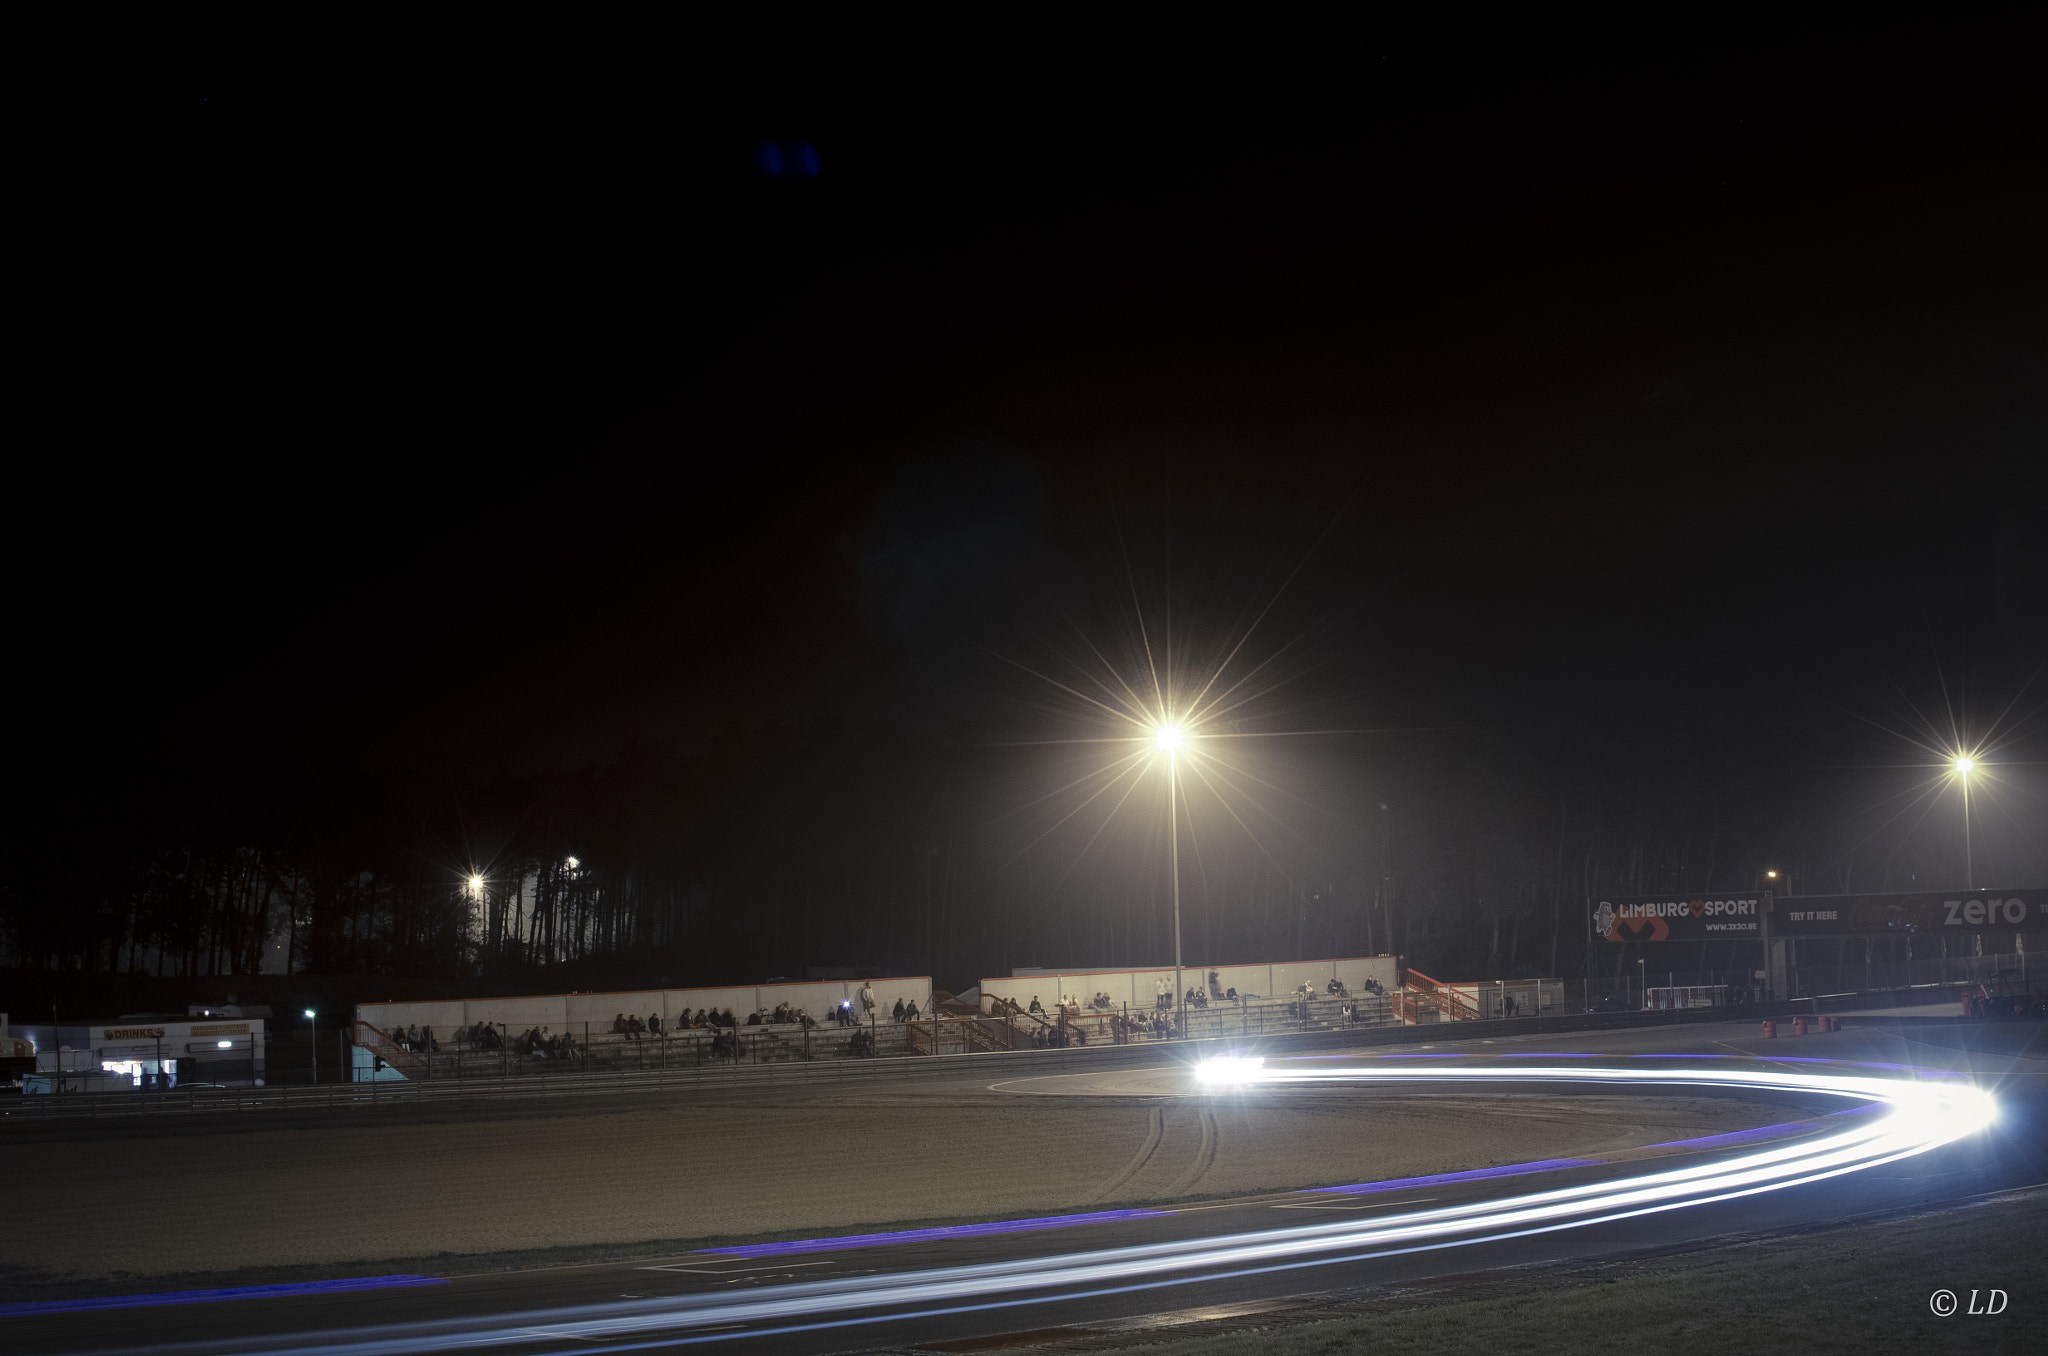 Photograph 24 Zolder @ night  by Dimi Luyten on 500px